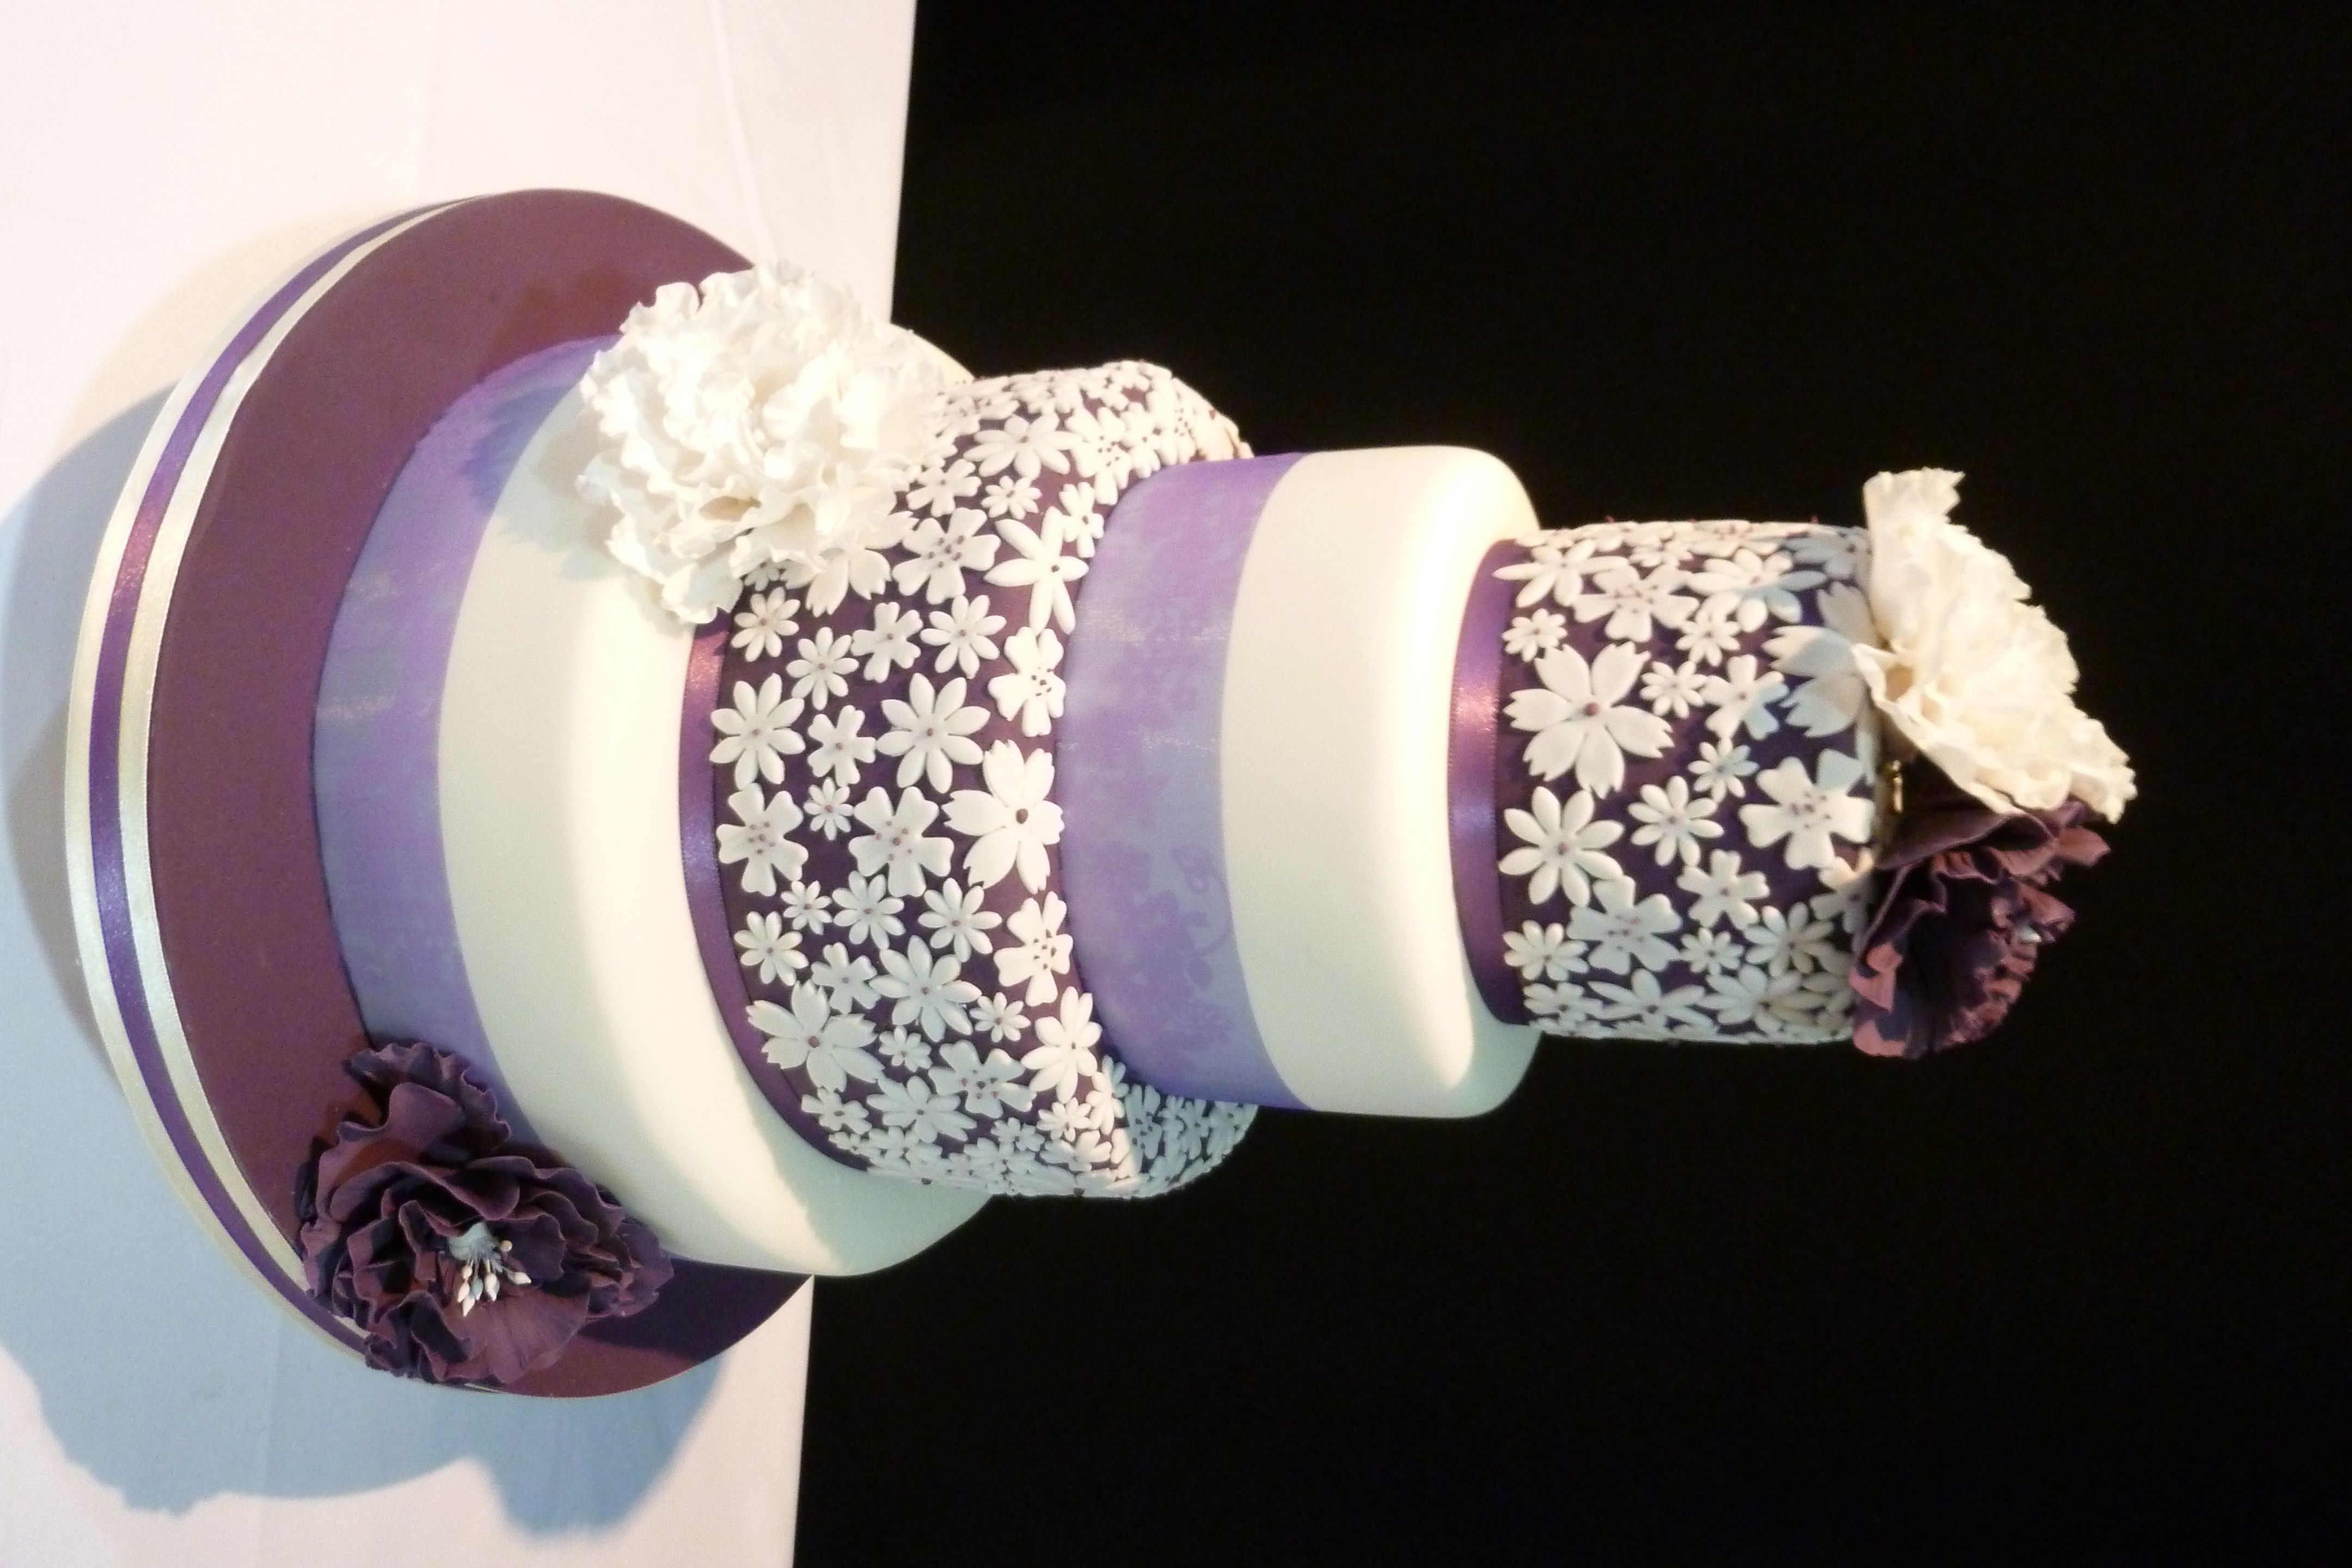 Zebra wedding decorations  by Jill Fisher of Cake Creations  Special Cakes   Pinterest  Cake